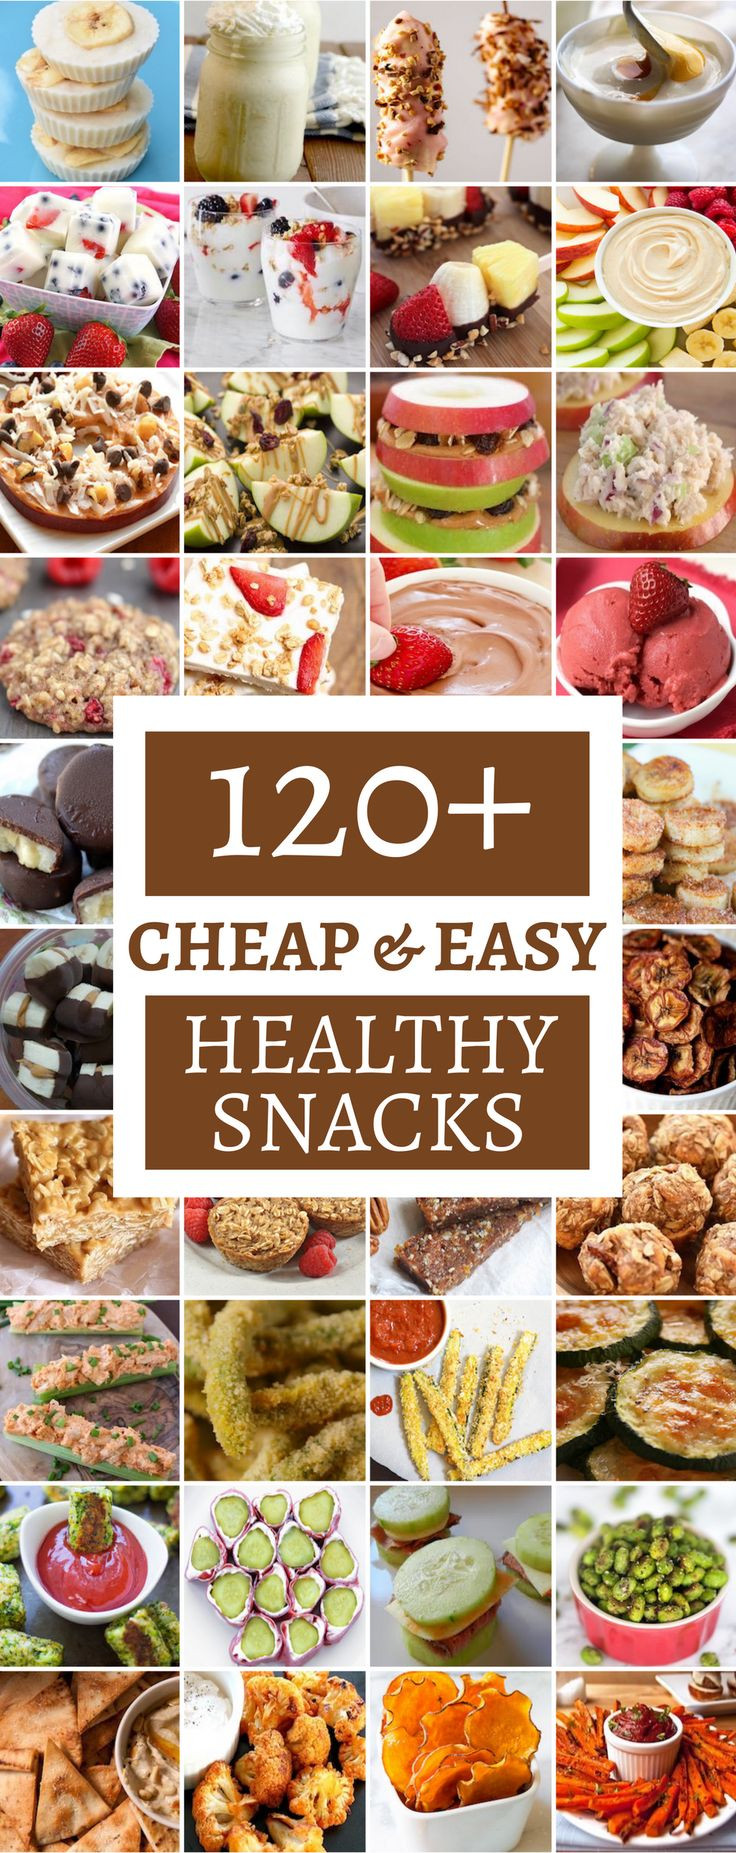 Cheap Healthy Snacks  Best 25 Cheap snack ideas ideas on Pinterest